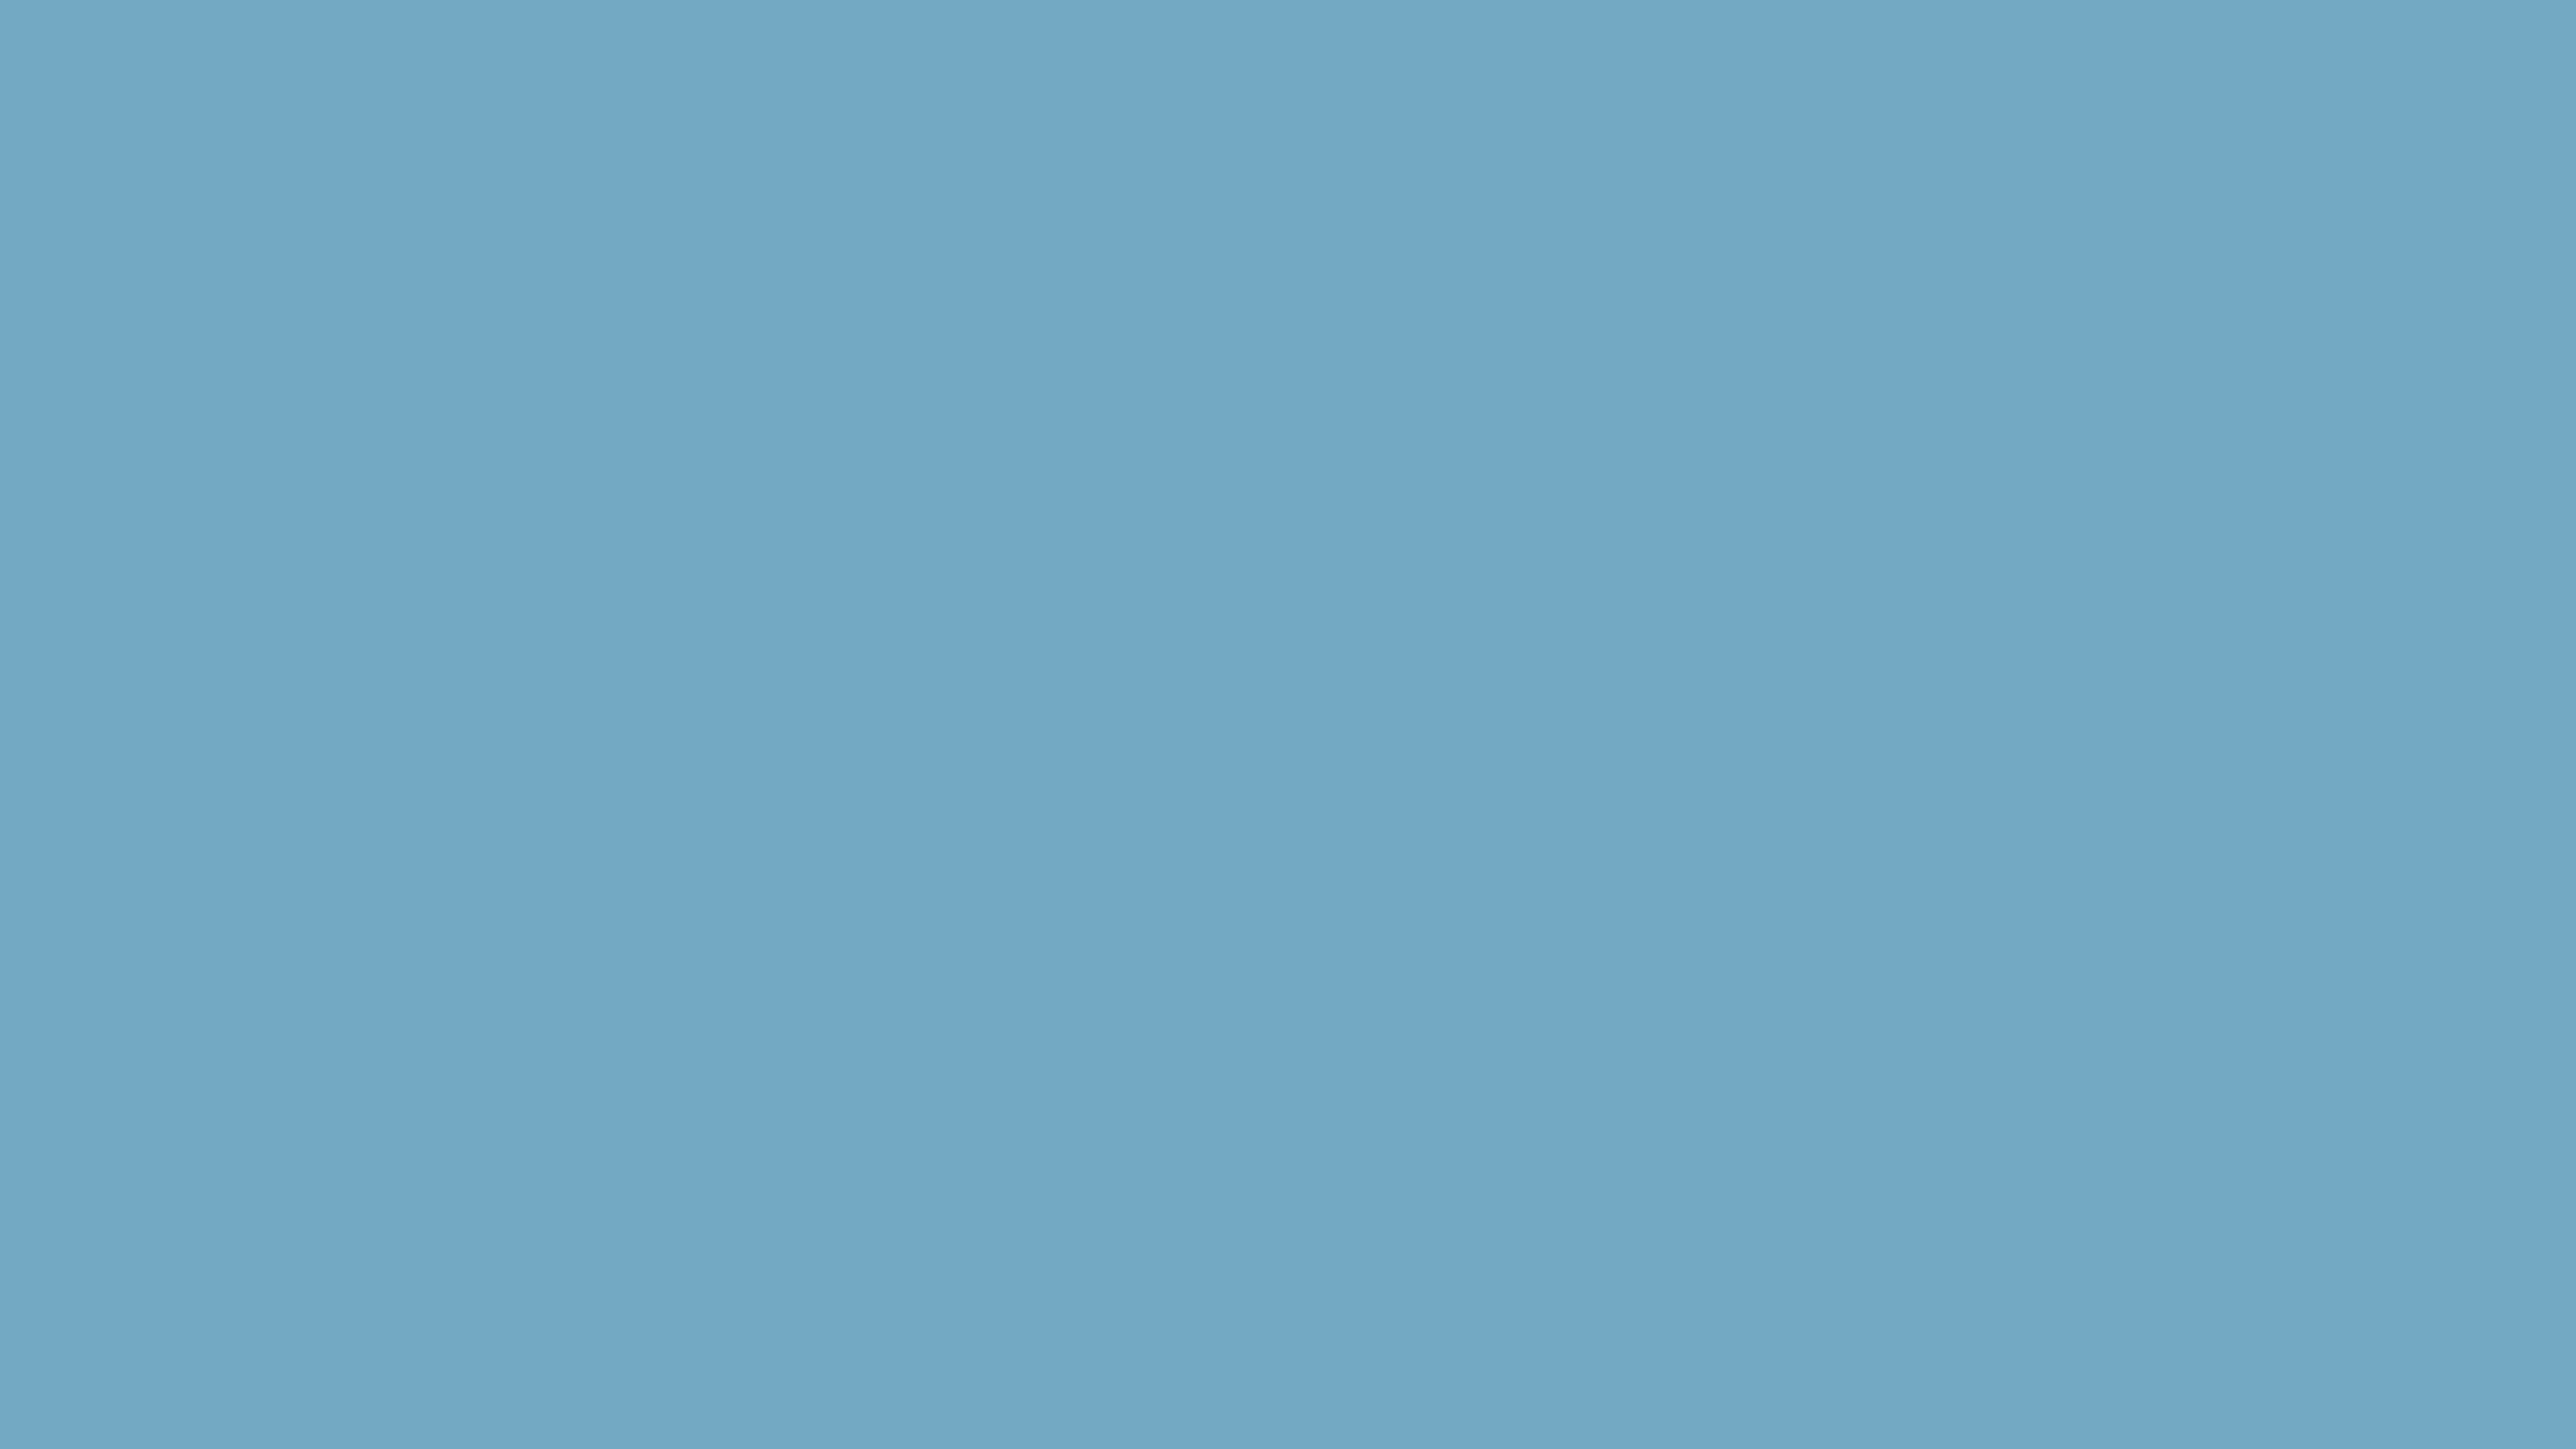 4096x2304 Moonstone Blue Solid Color Background